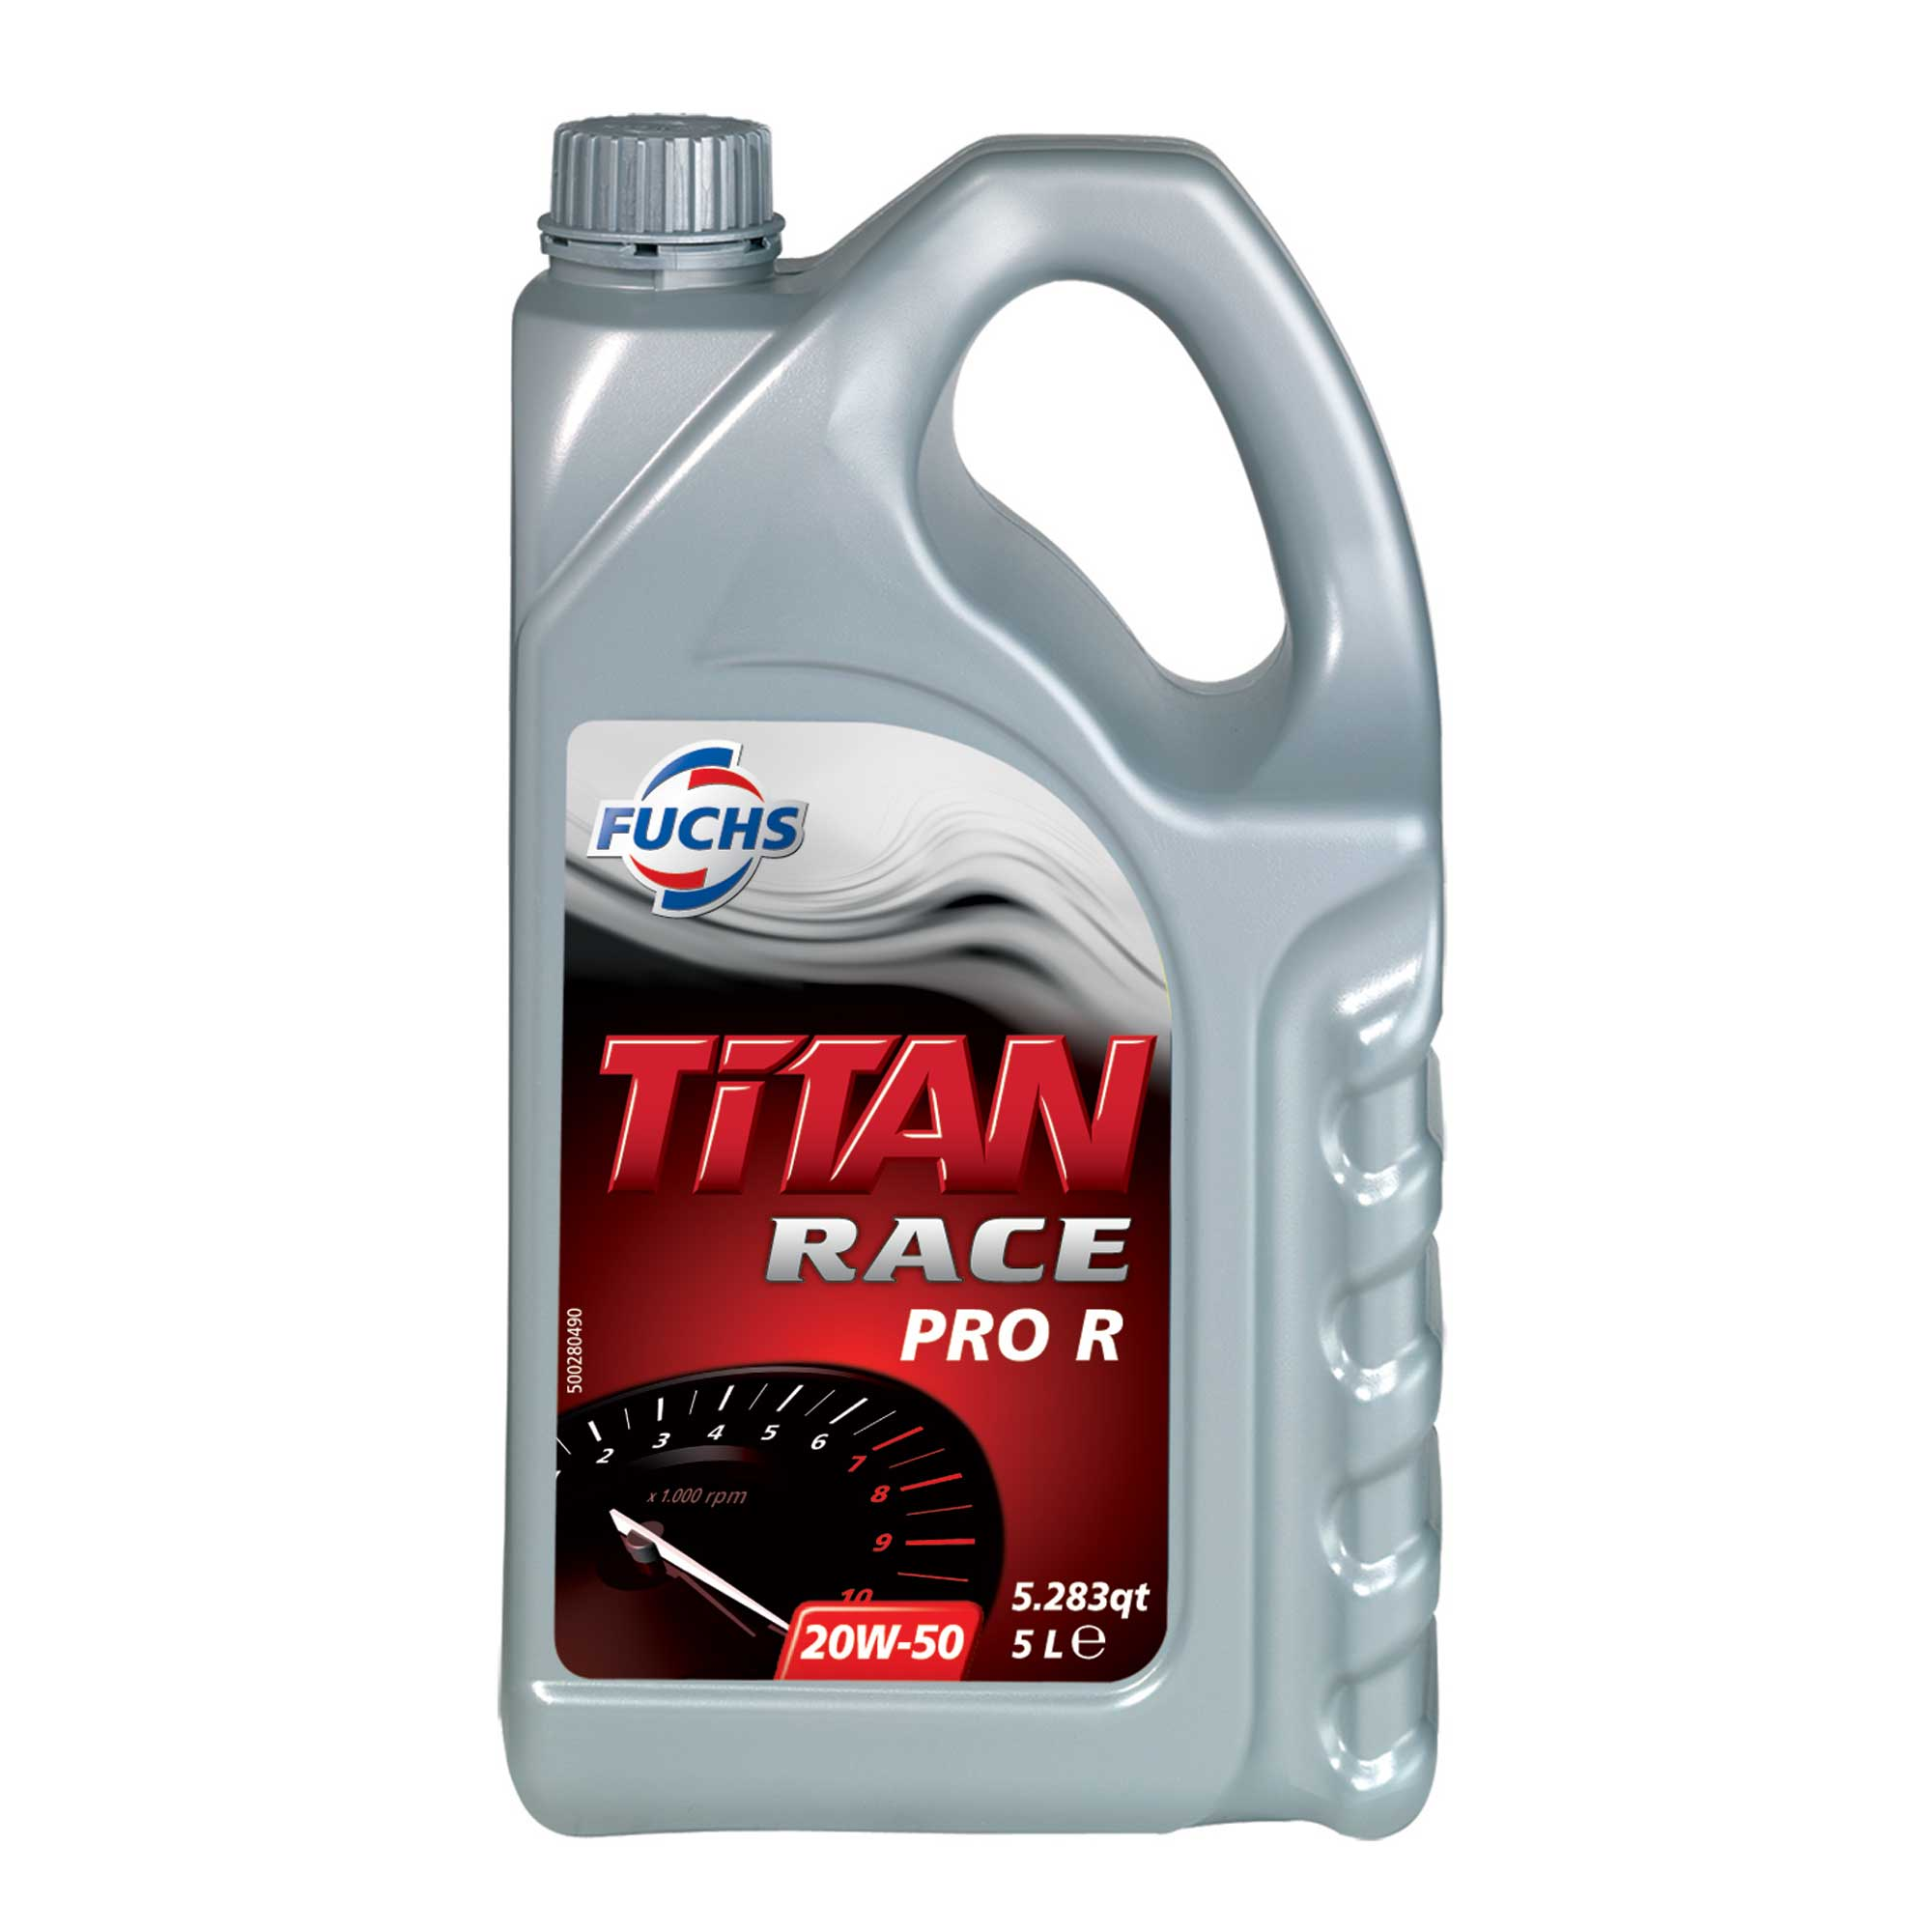 Details about Fuchs Titan Race Pro R Fully Synthetic Car Engine Oil - 10W40  - 1 Litre